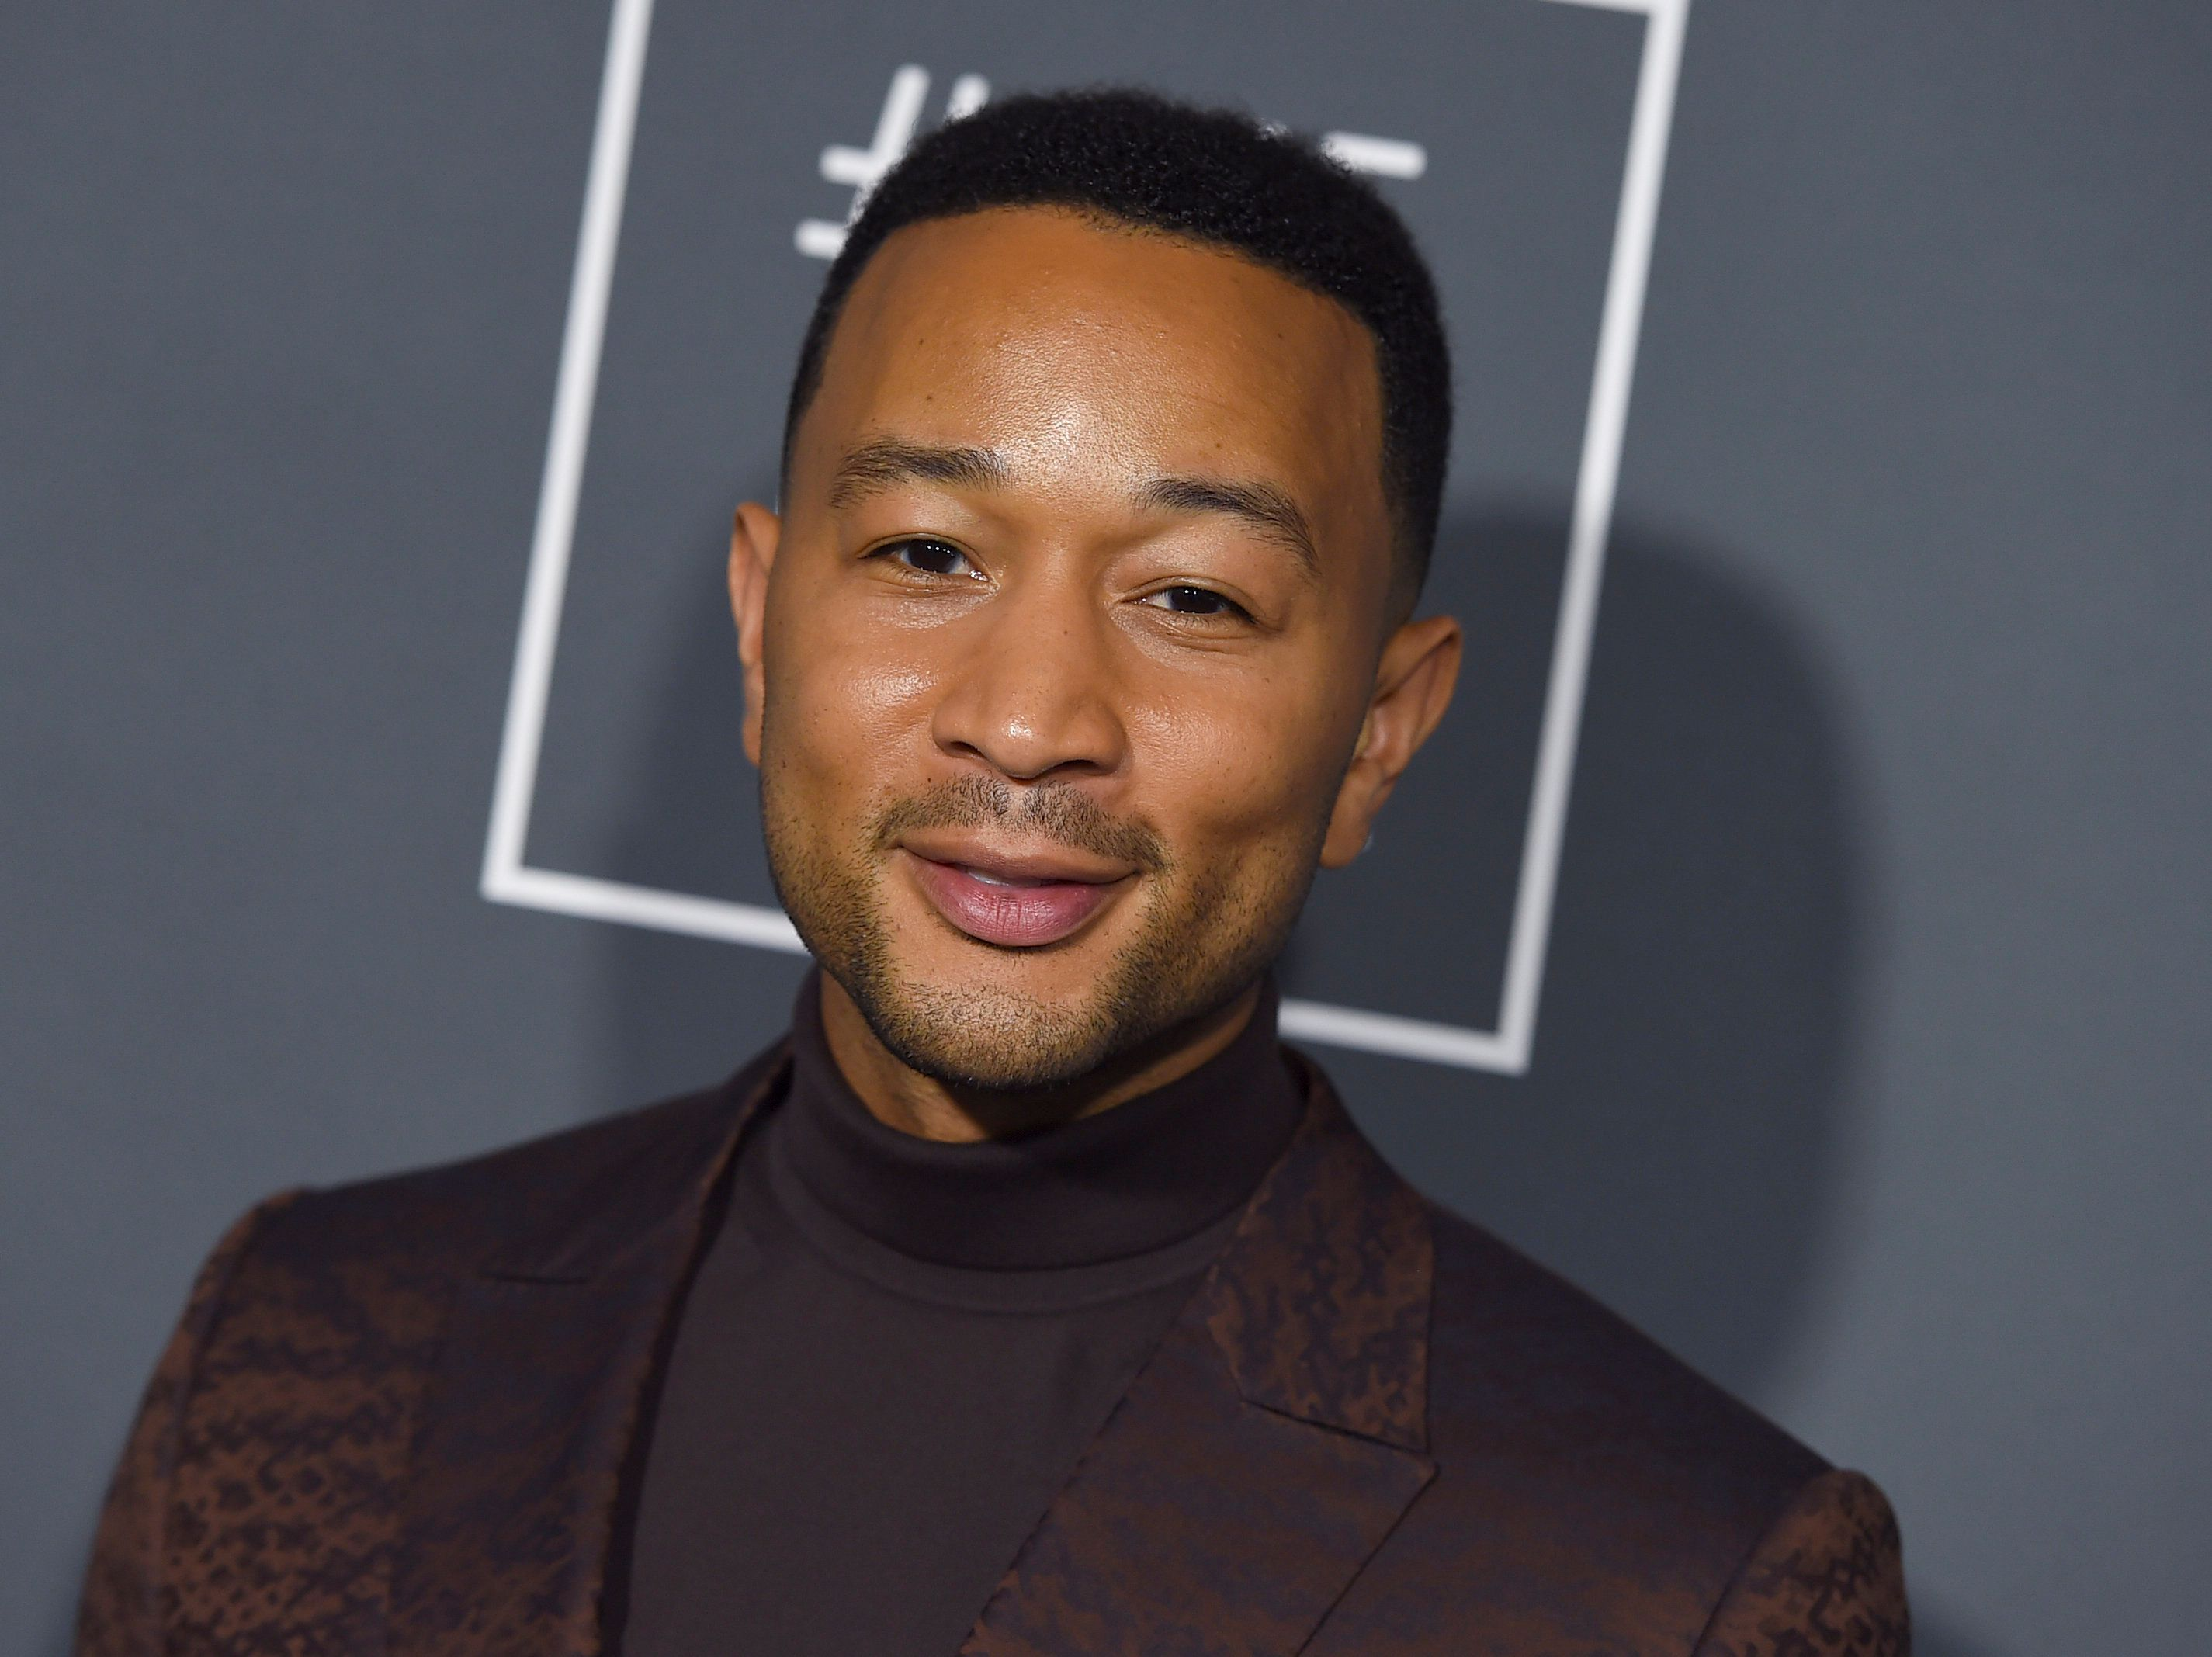 John Legend arrives at the 24th annual Critics' Choice Awards on Sunday, Jan. 13, 2019, at the Barker Hangar in Santa Monica, Calif. (Photo by Jordan Strauss/Invision/AP)